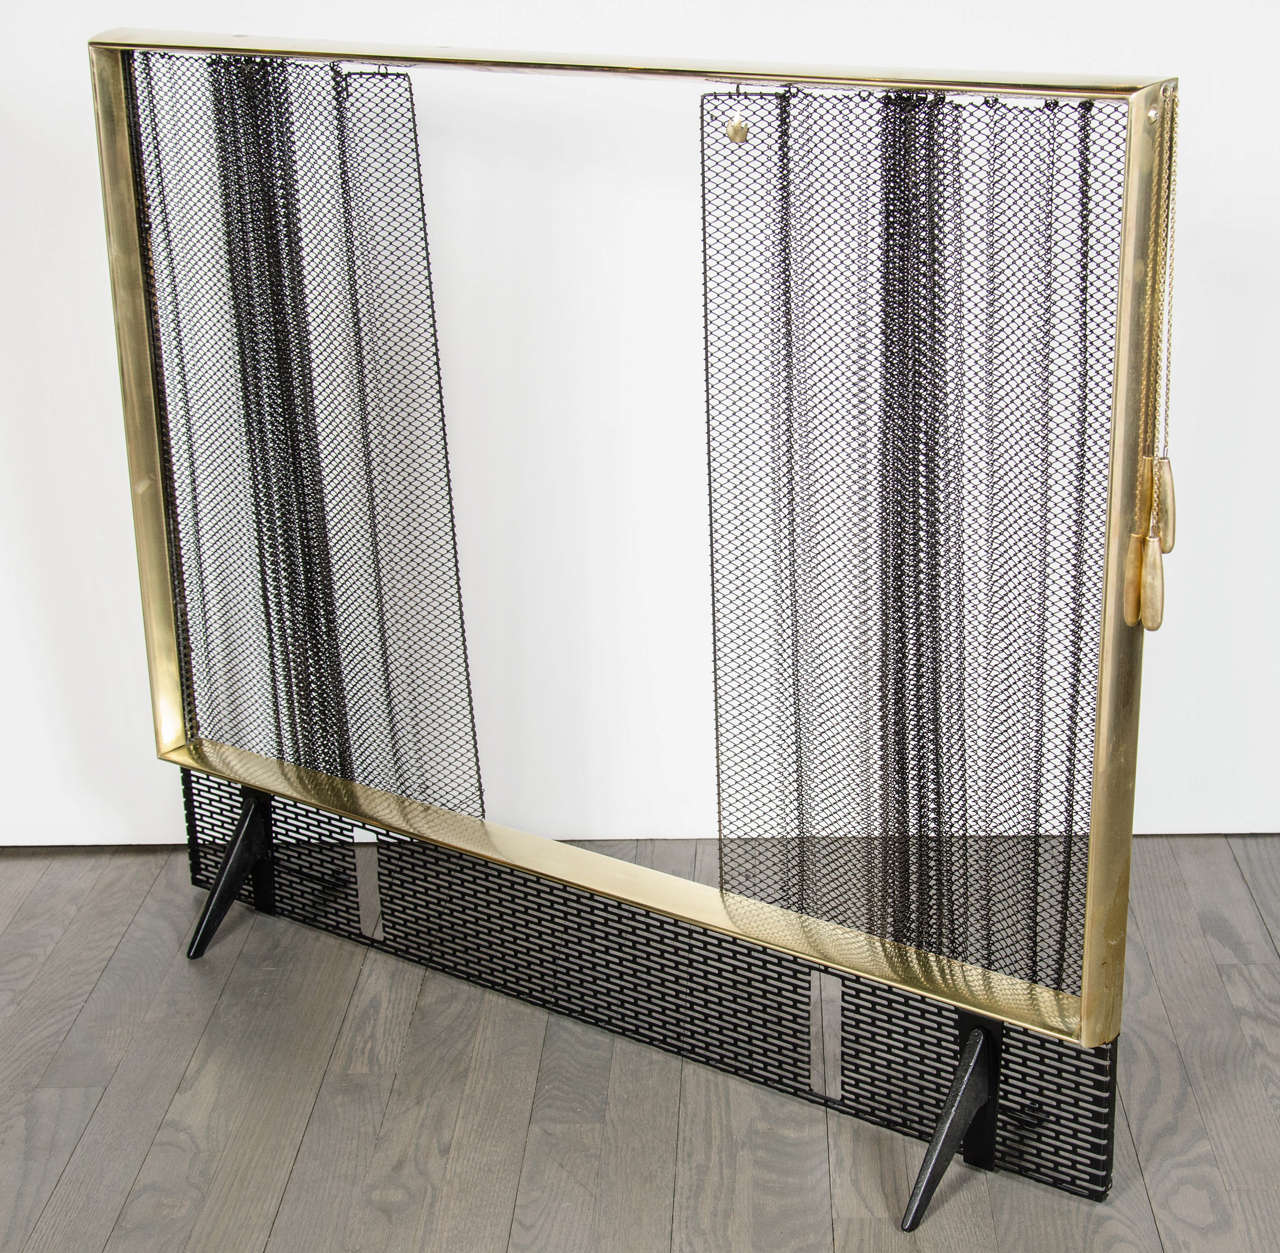 Exceptional Art Deco Fire Screen By Donald Deskey For Bennett At 1stdibs